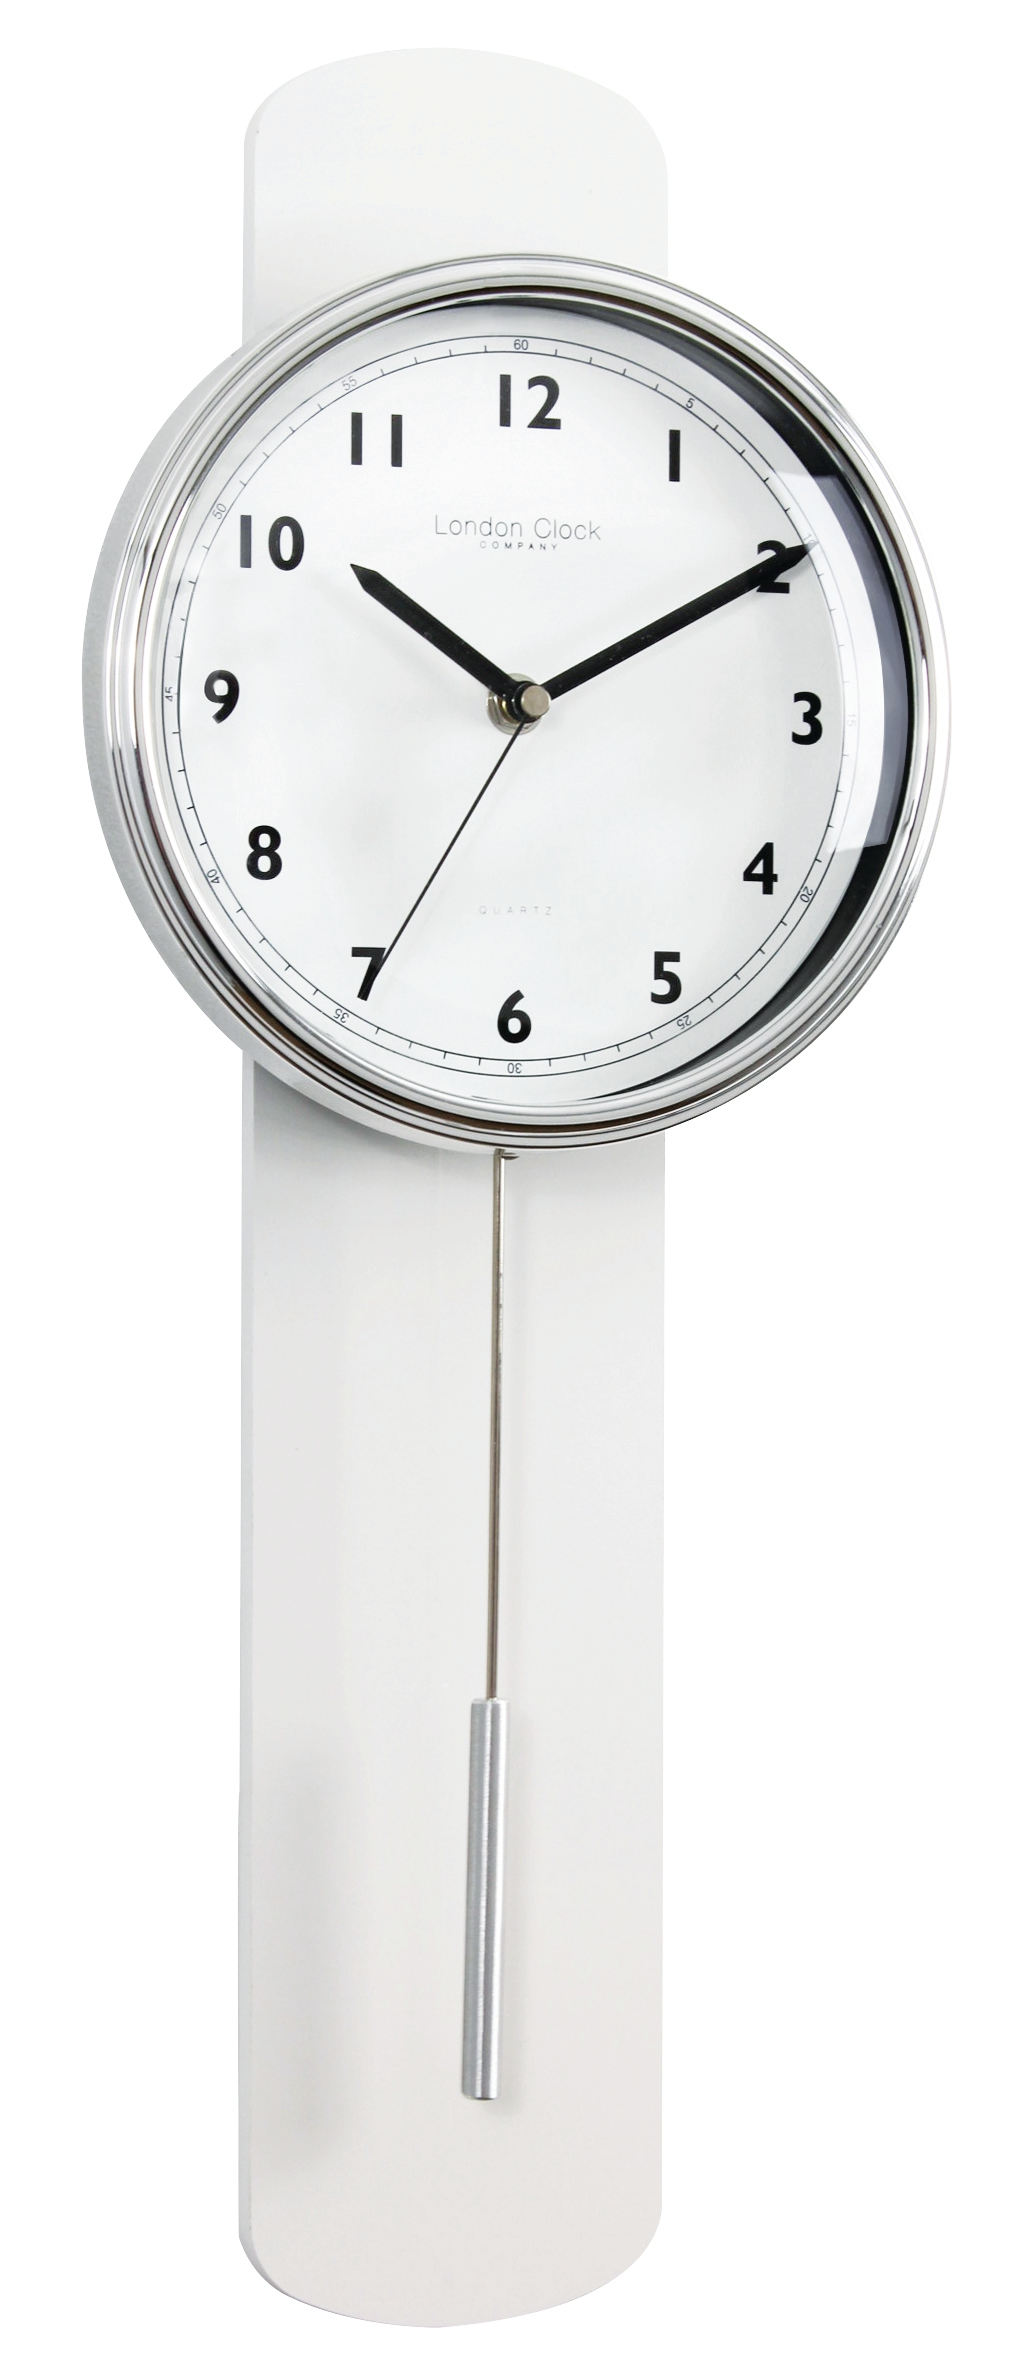 London clock company white finish contemporary pendulum wall clock discount homeware and giftware - Contemporary wall clocks with pendulum ...